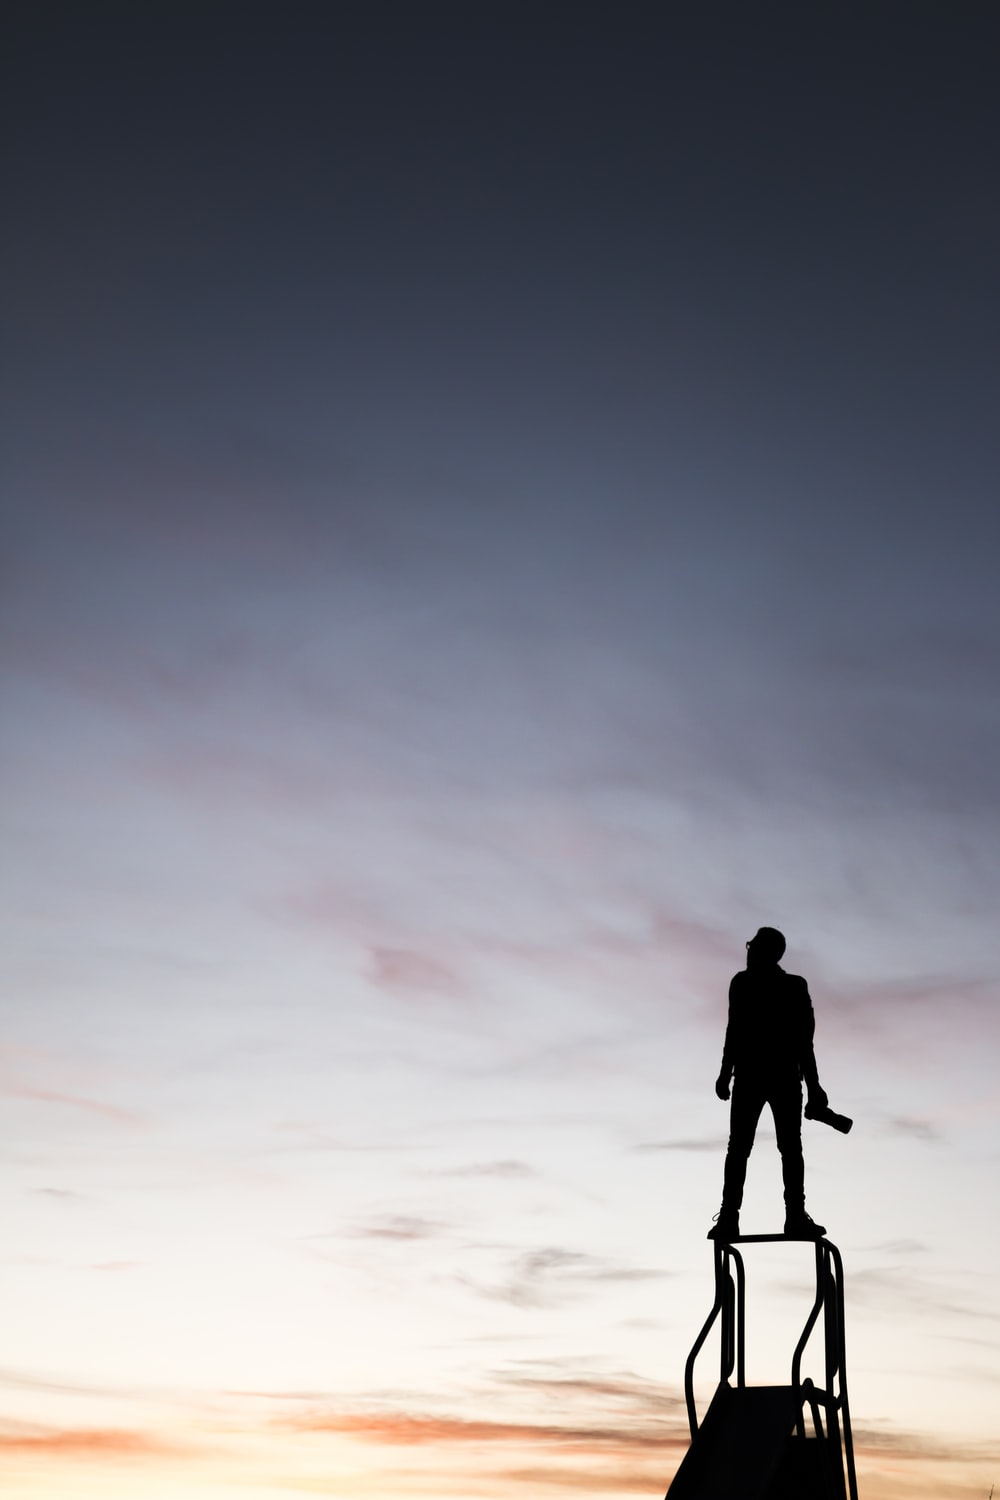 silhouette of man standing on slide while holding camera